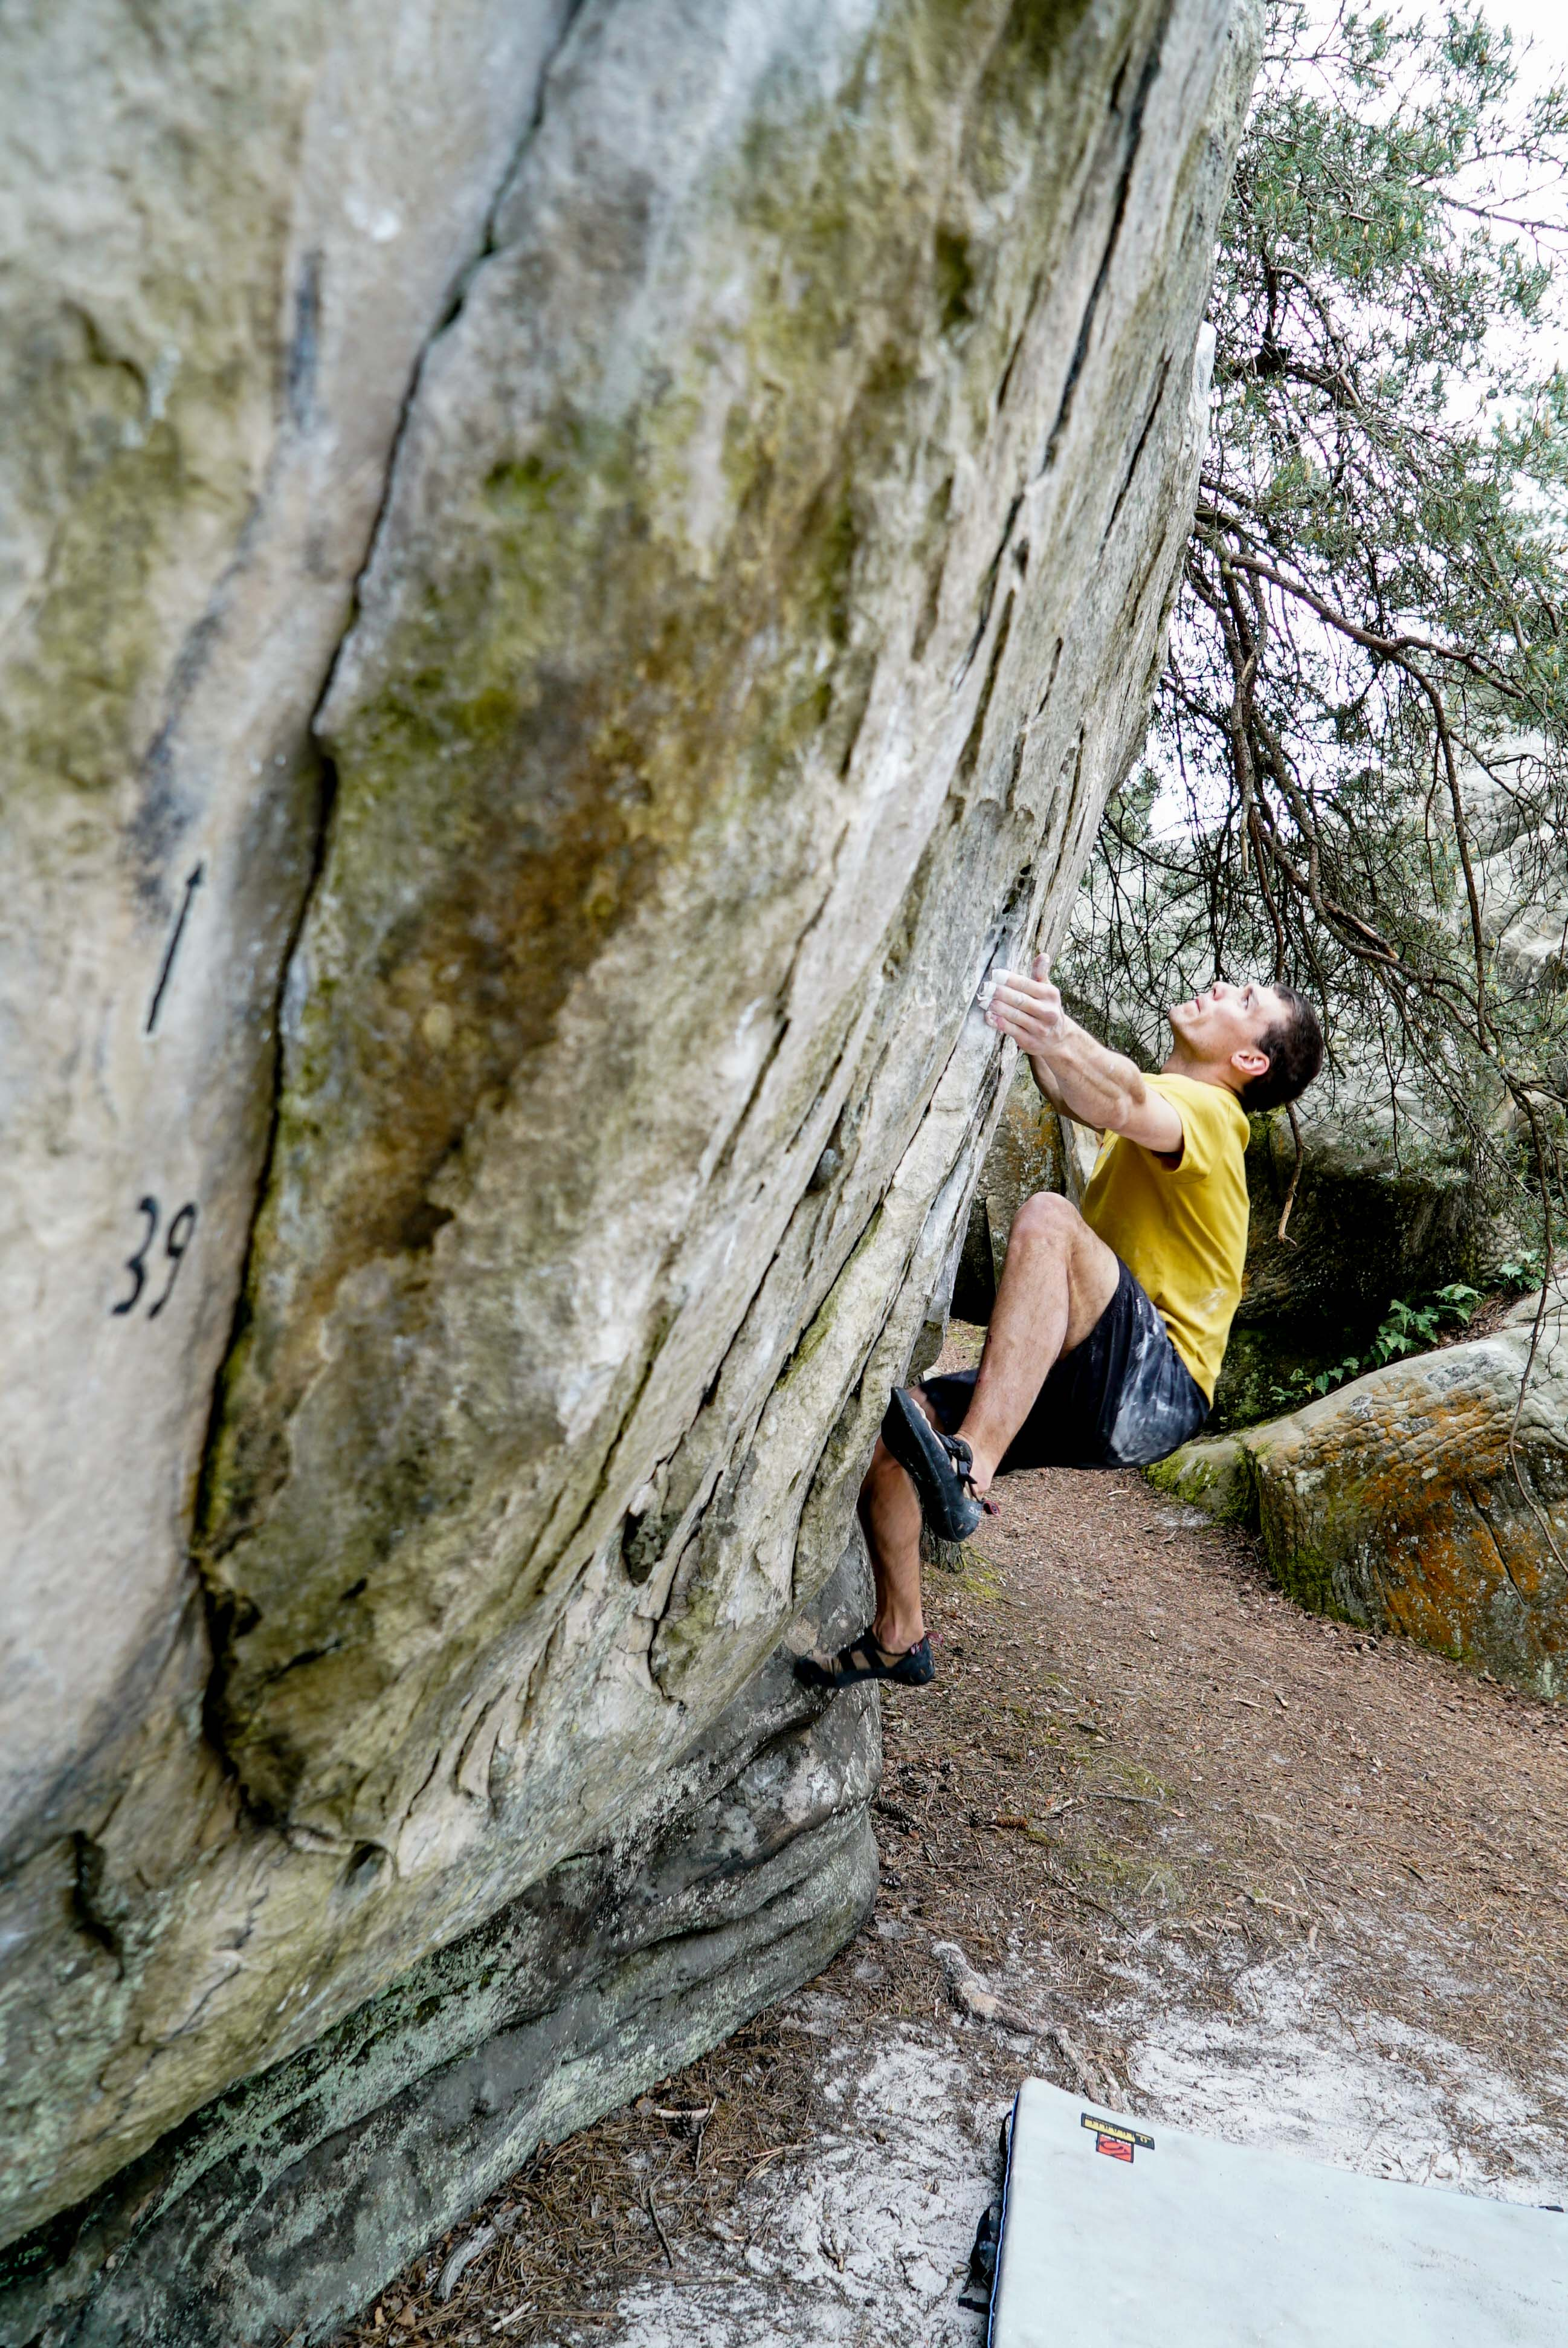 fontainbleau climbing 2016 mike brindley-5